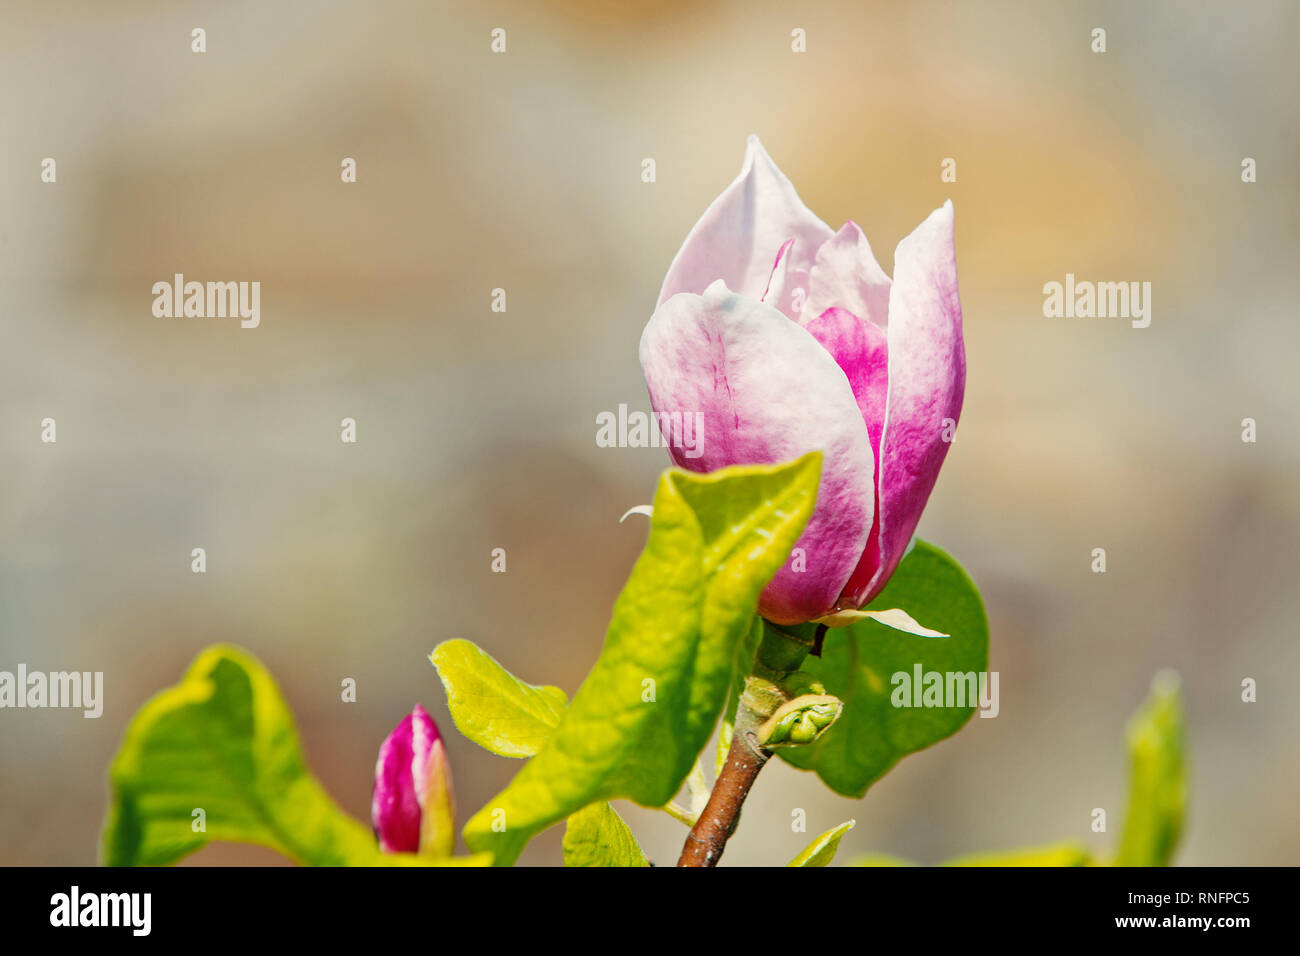 Blossom of magnolia tree on sunny day, spring flower. Magnolia flower bloom on blurred background. Spring season concept. New life awakening. Nature, beauty, environment, copy space - Stock Image